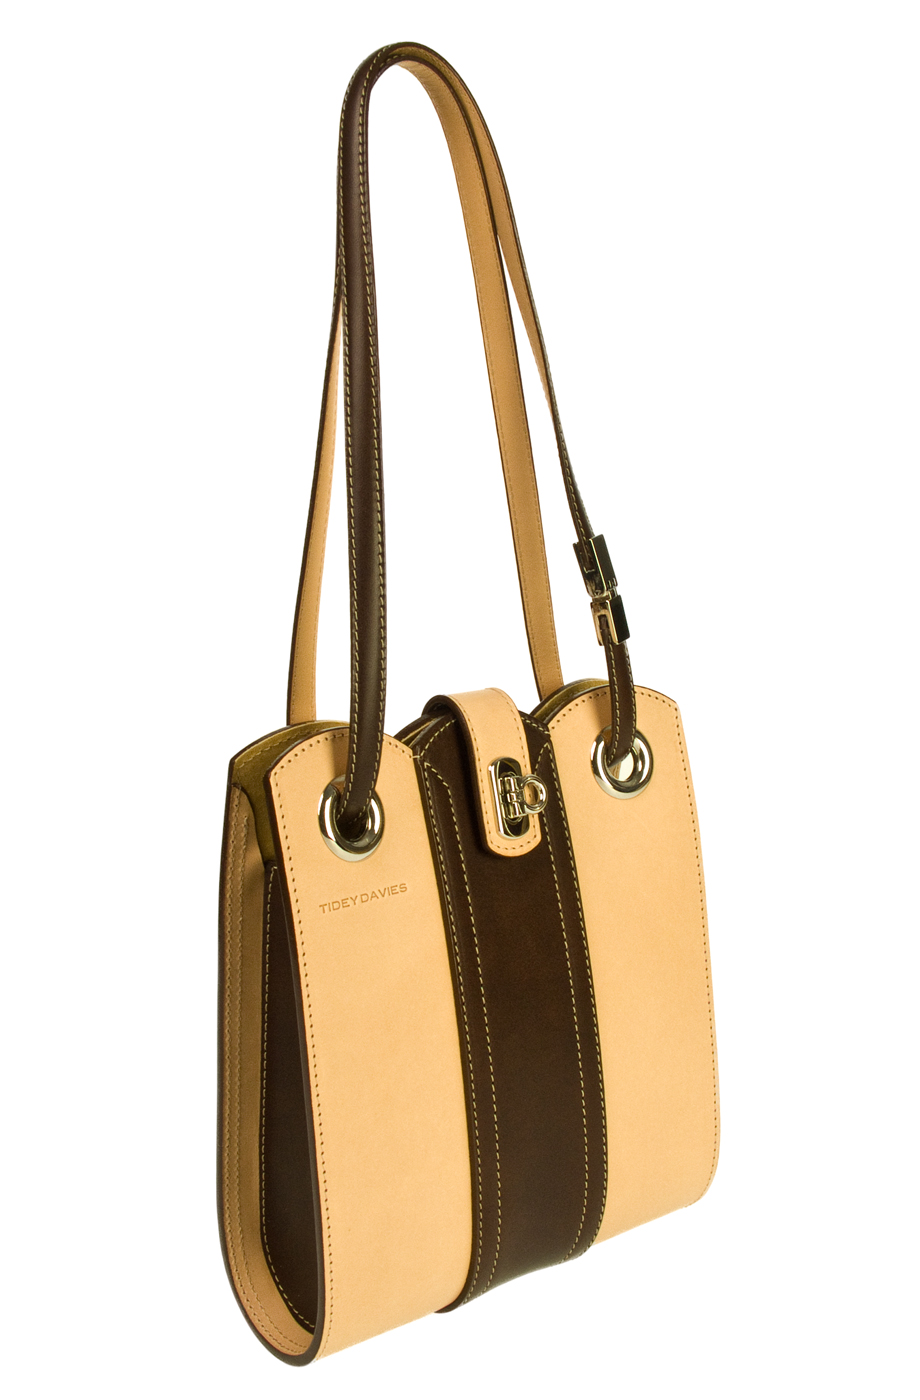 CL0808 Brown and Natural Curvi-Linear Bag